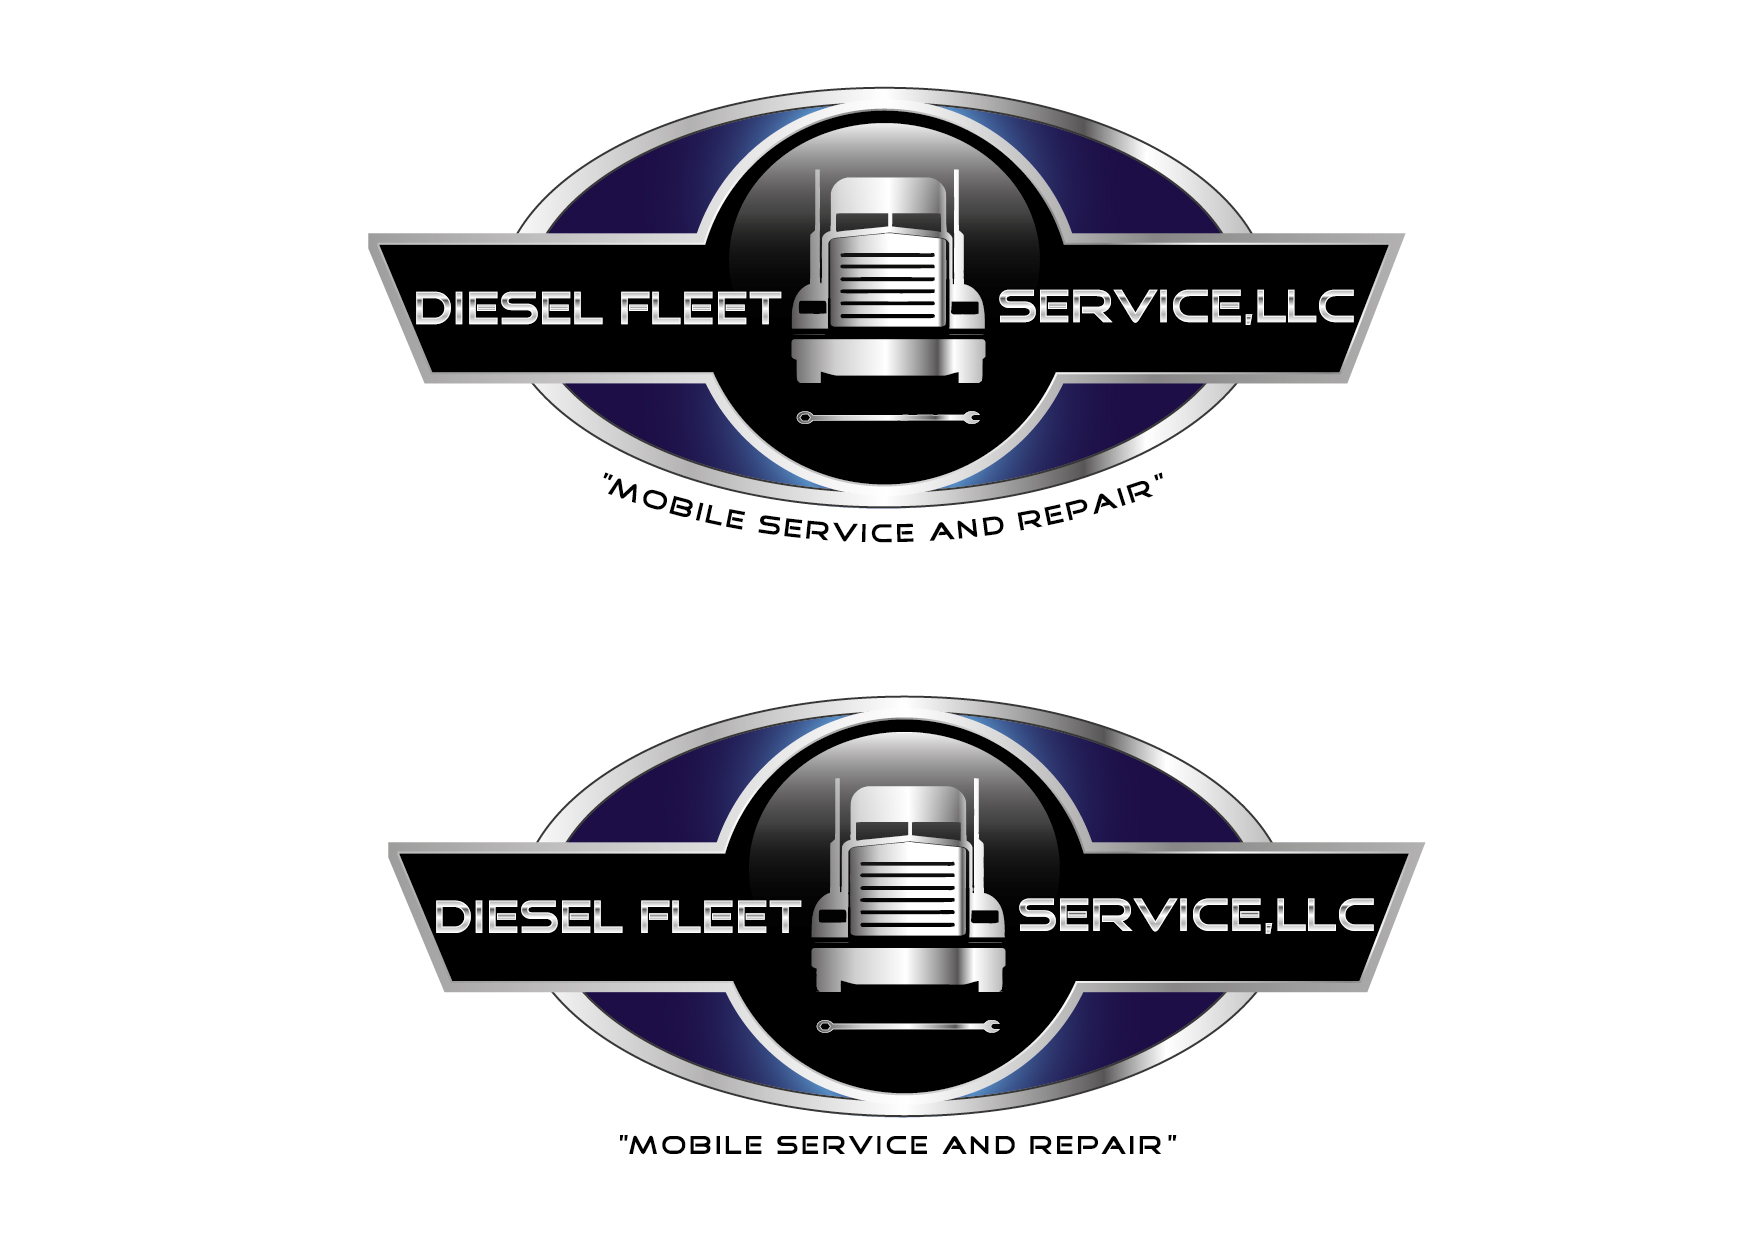 Logo Design by VENTSISLAV KOVACHEV - Entry No. 62 in the Logo Design Contest Artistic Logo Design for Diesel Fleet Service, LLC.